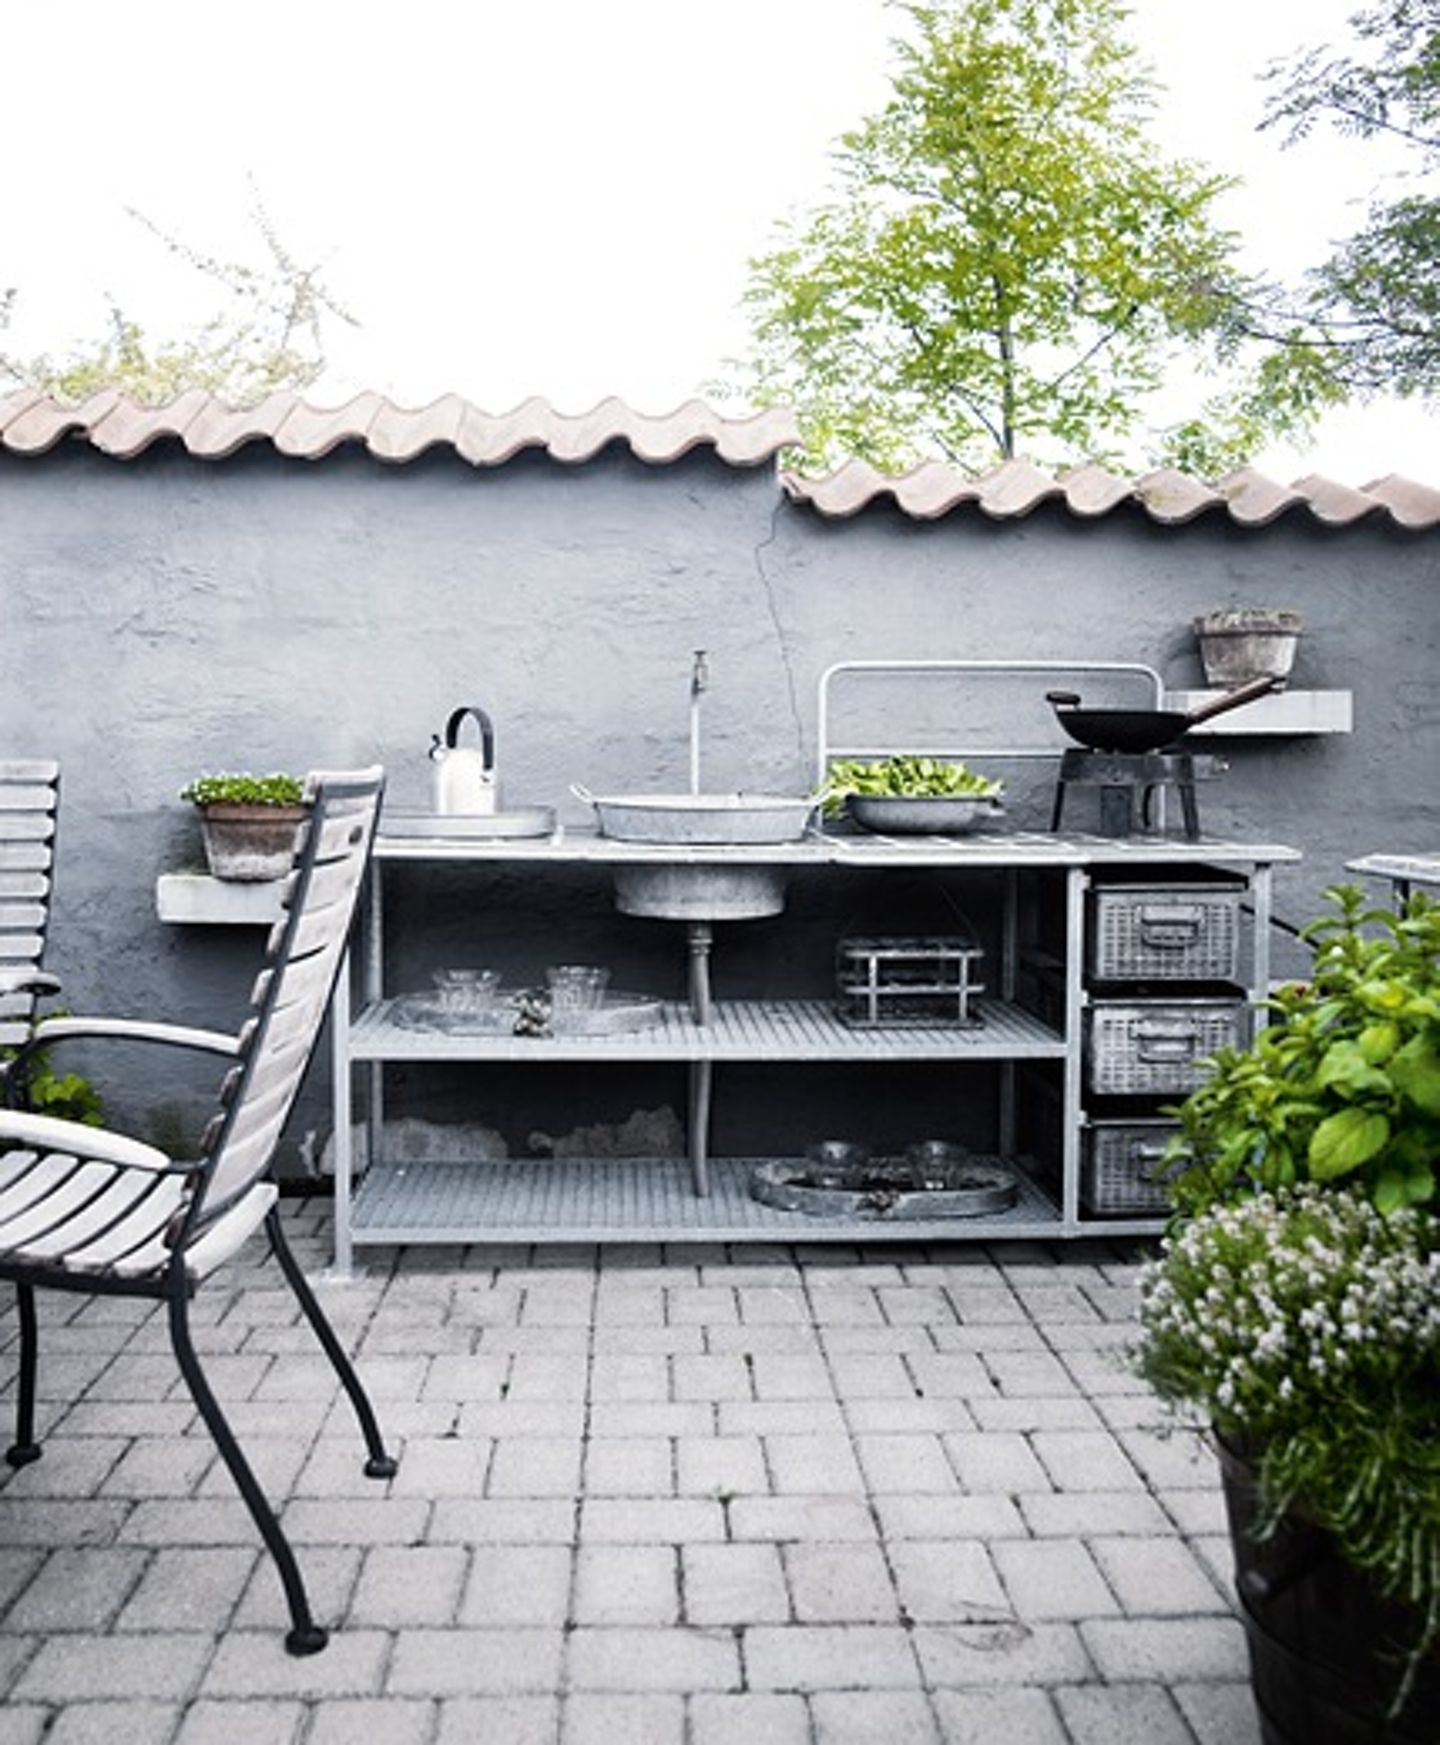 Utekjøkken Moduler Utekjøkken The Kitchen 39s Pinterest Gardens Simple